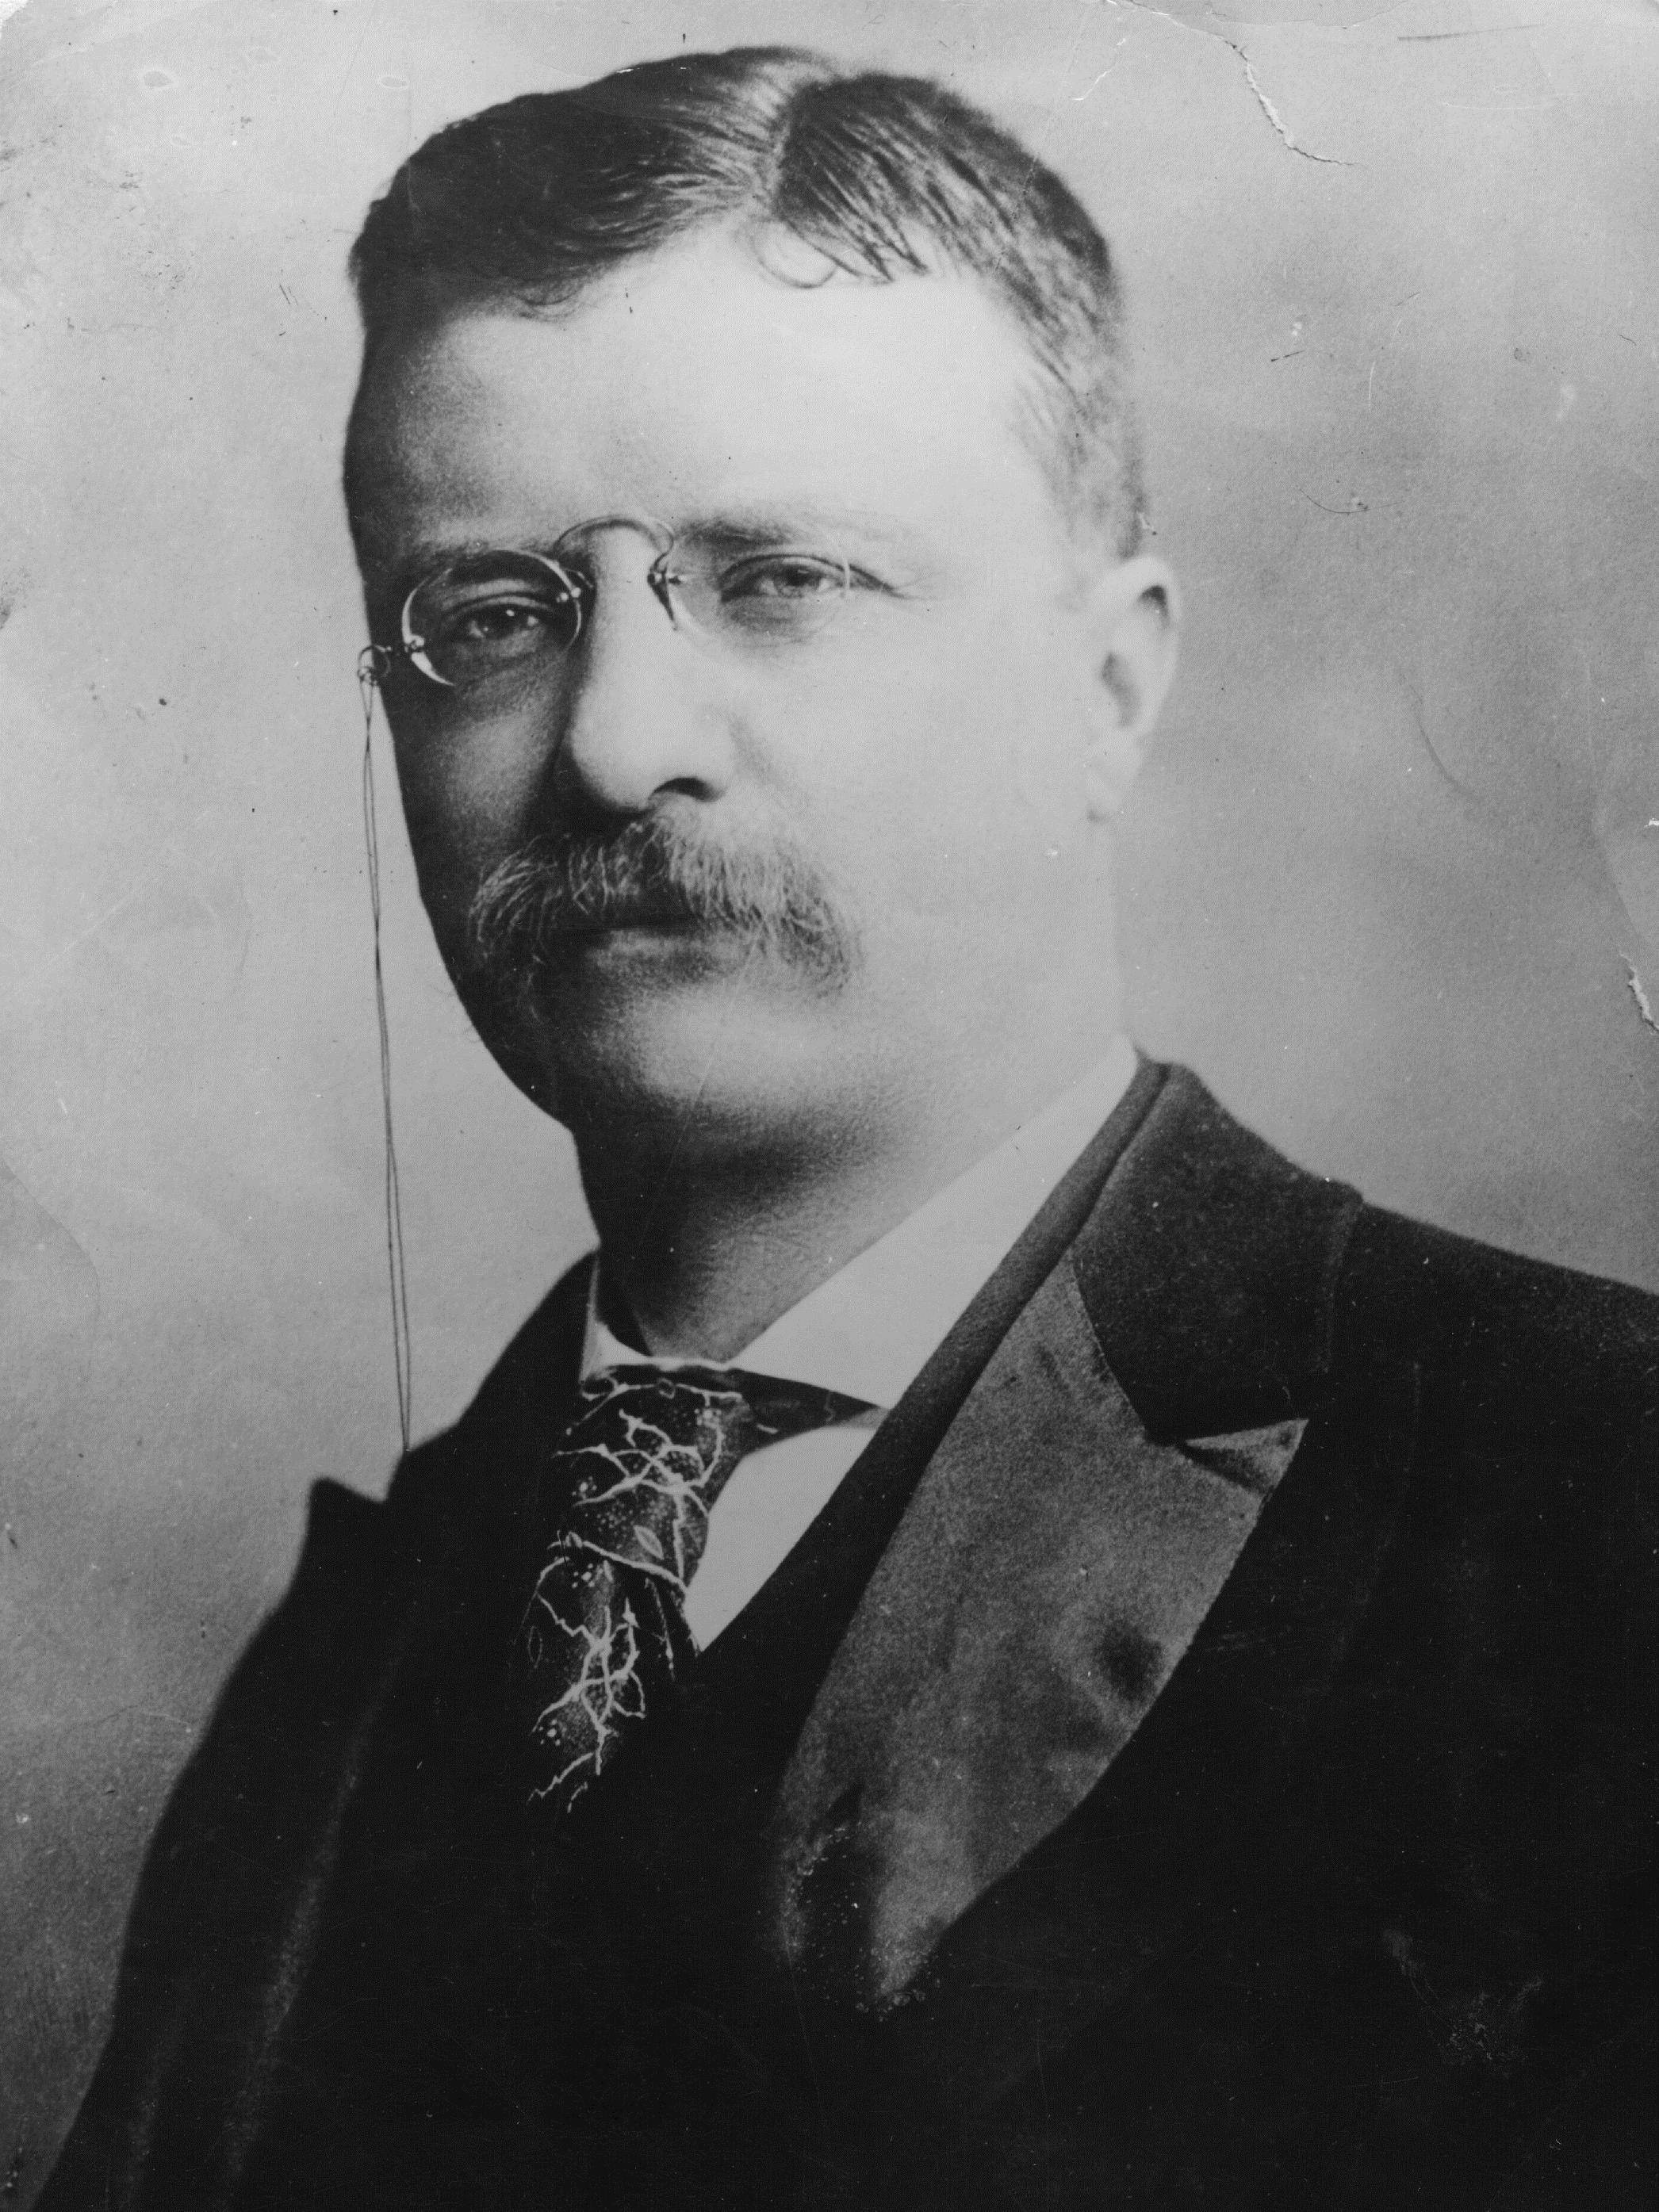 a biography of theodore roosevelt a president of the united states Watch a short biography video of theodore roosevelt, the 26th president of the united states who focused on ecological preservation #biography subscribe for.